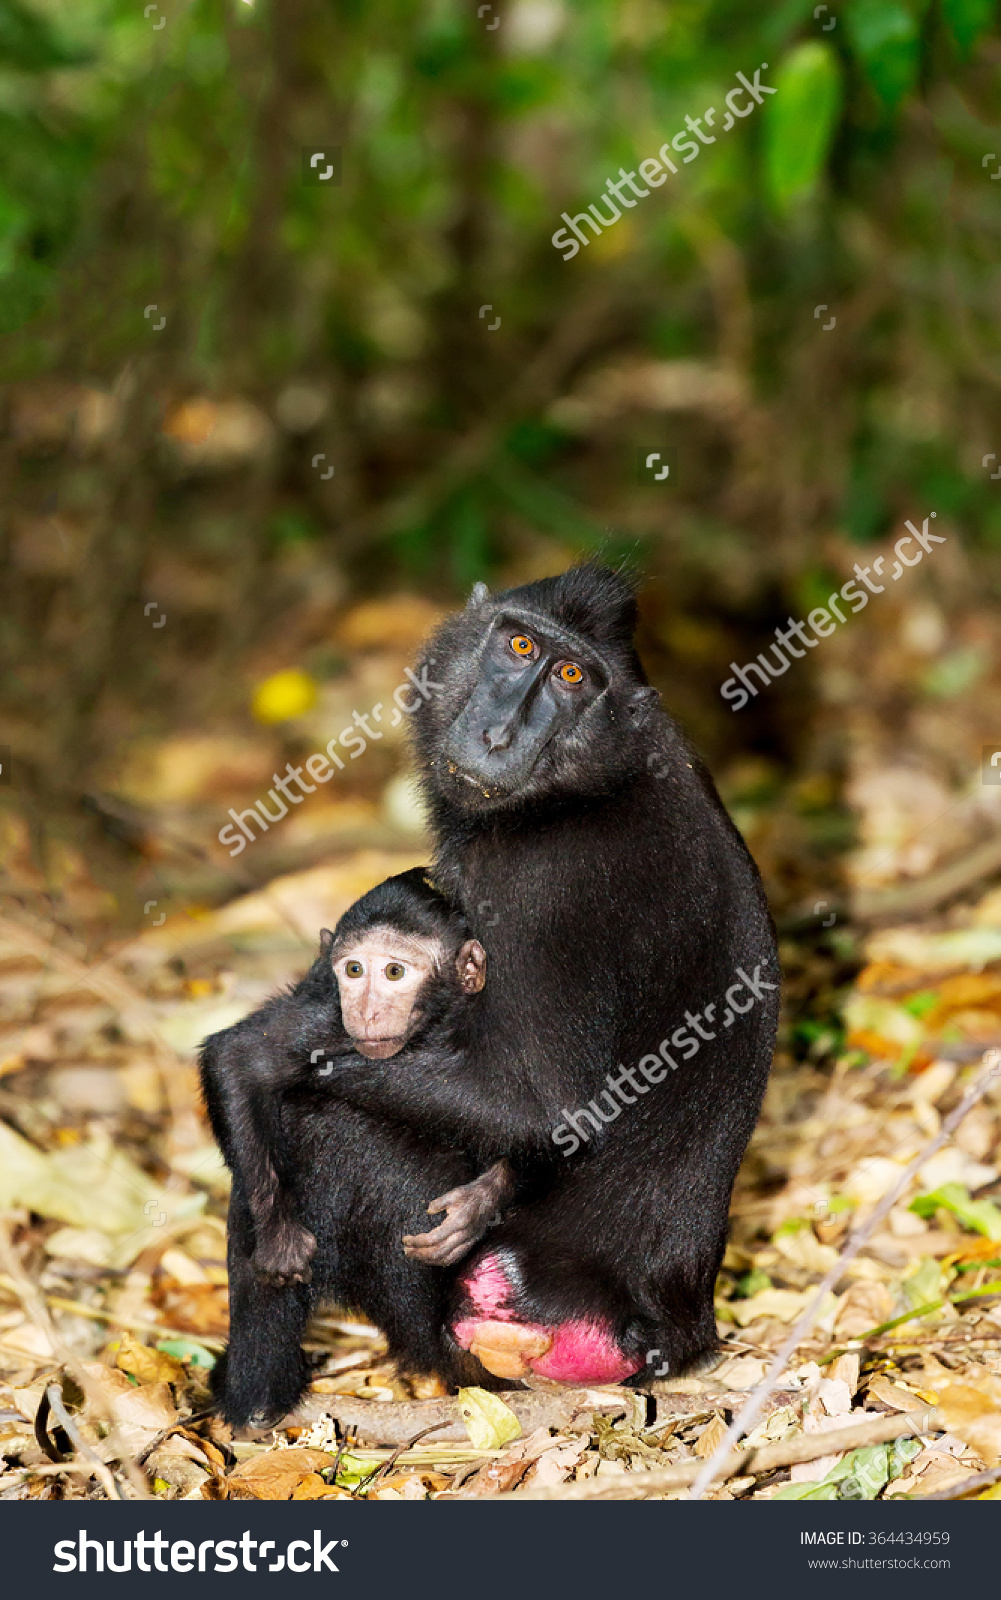 Celebes Crested Macaque clipart #5, Download drawings